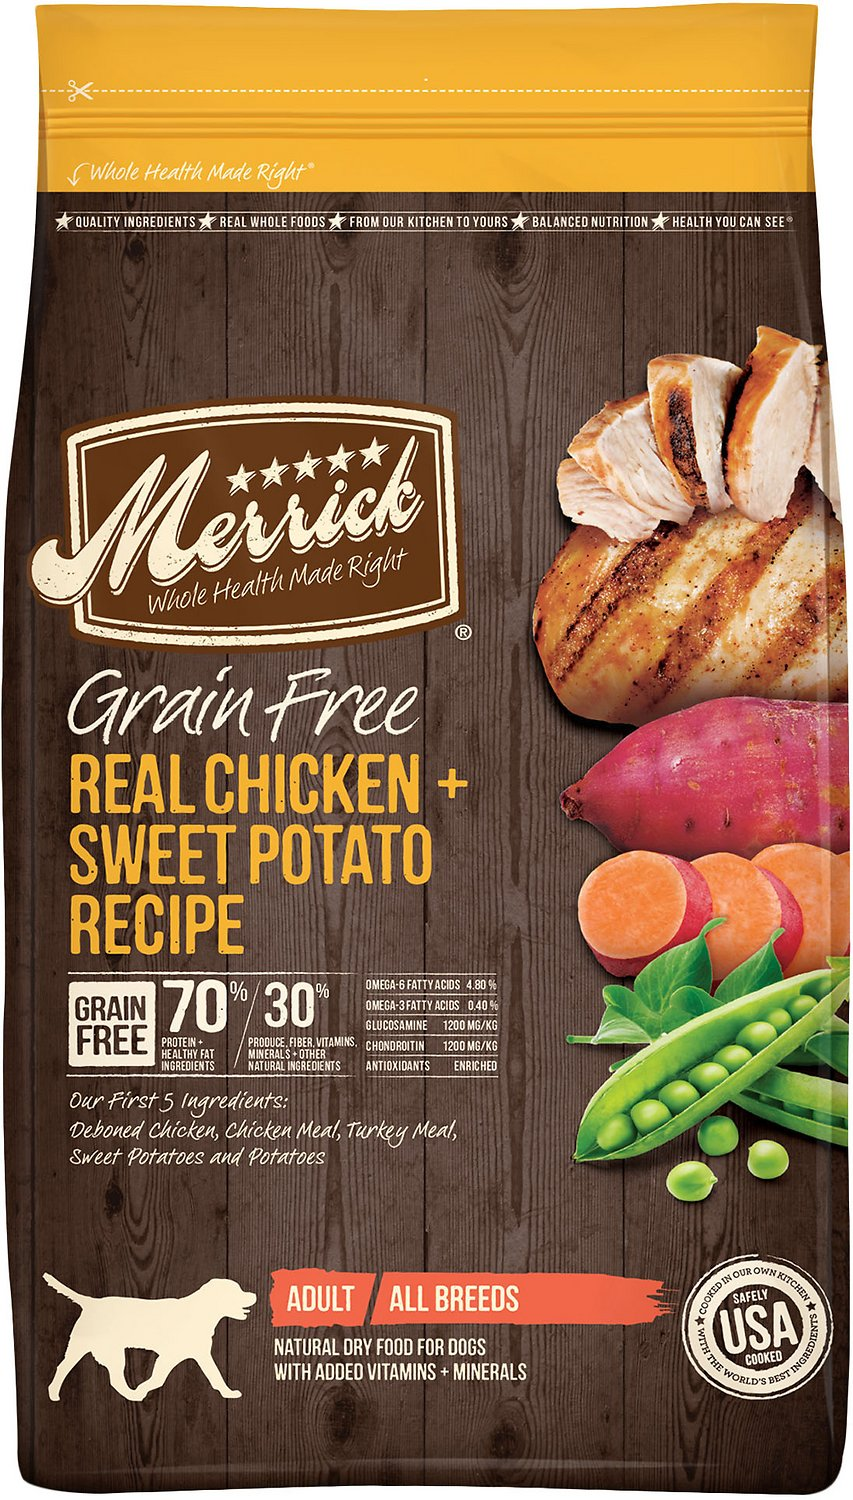 Merrick Grain-Free Real Chicken + Sweet Potato Recipe Dry Dog Food Image